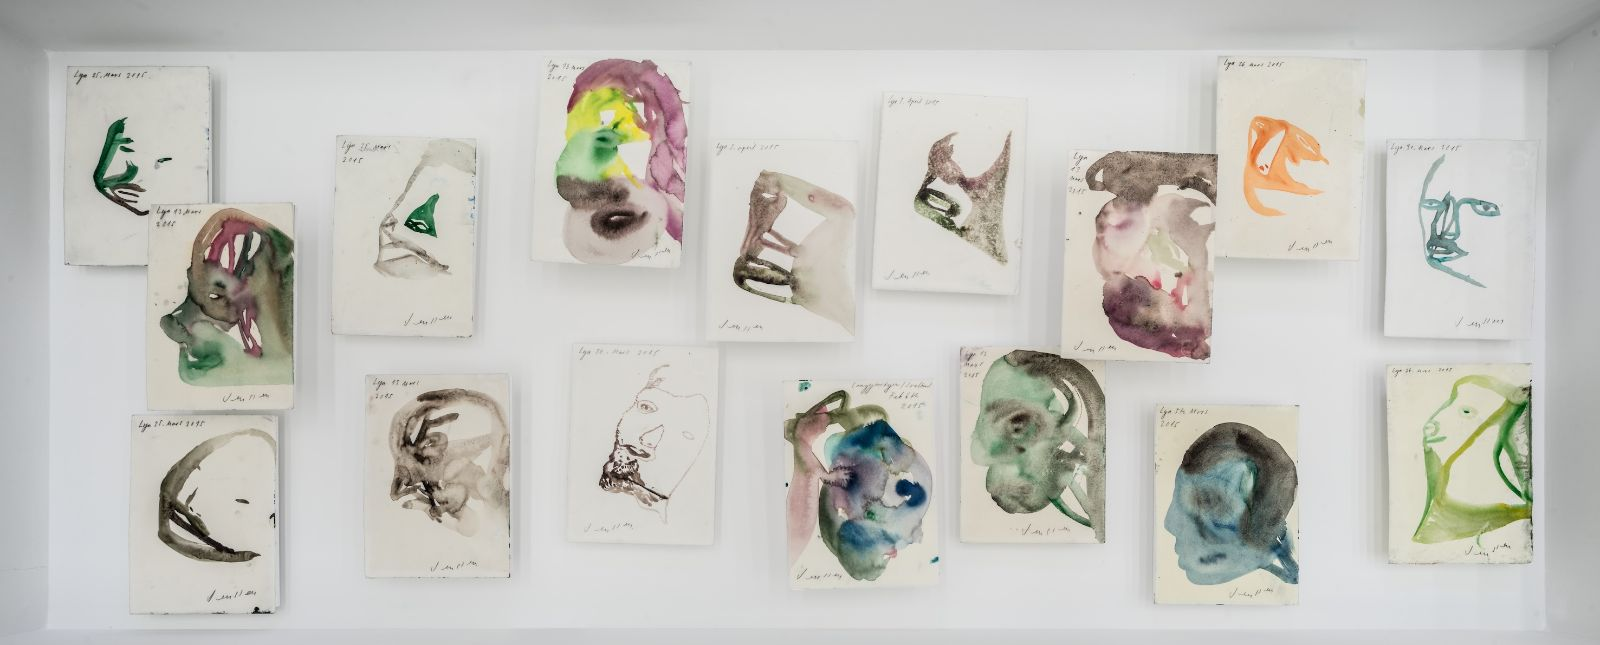 Untitled, 2015, Watercolour and pencil on waxed paper, each 23 x 17,5 cm